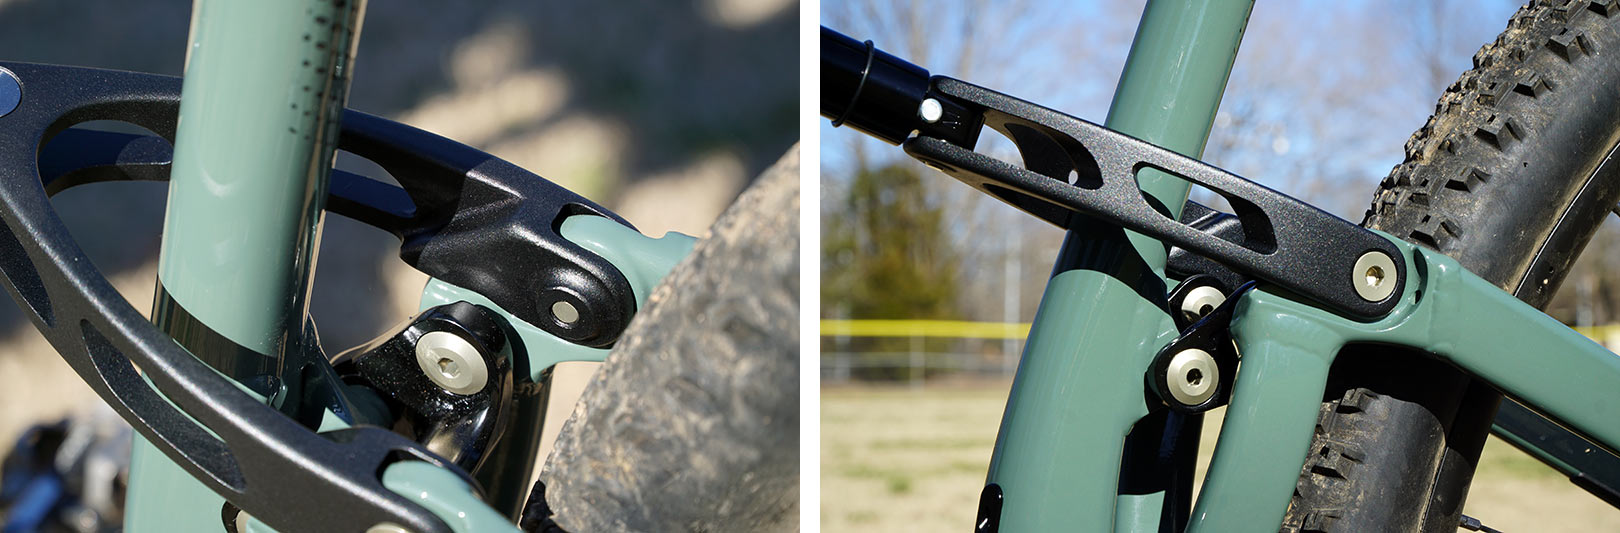 ibis ripley af mountain bike tech details